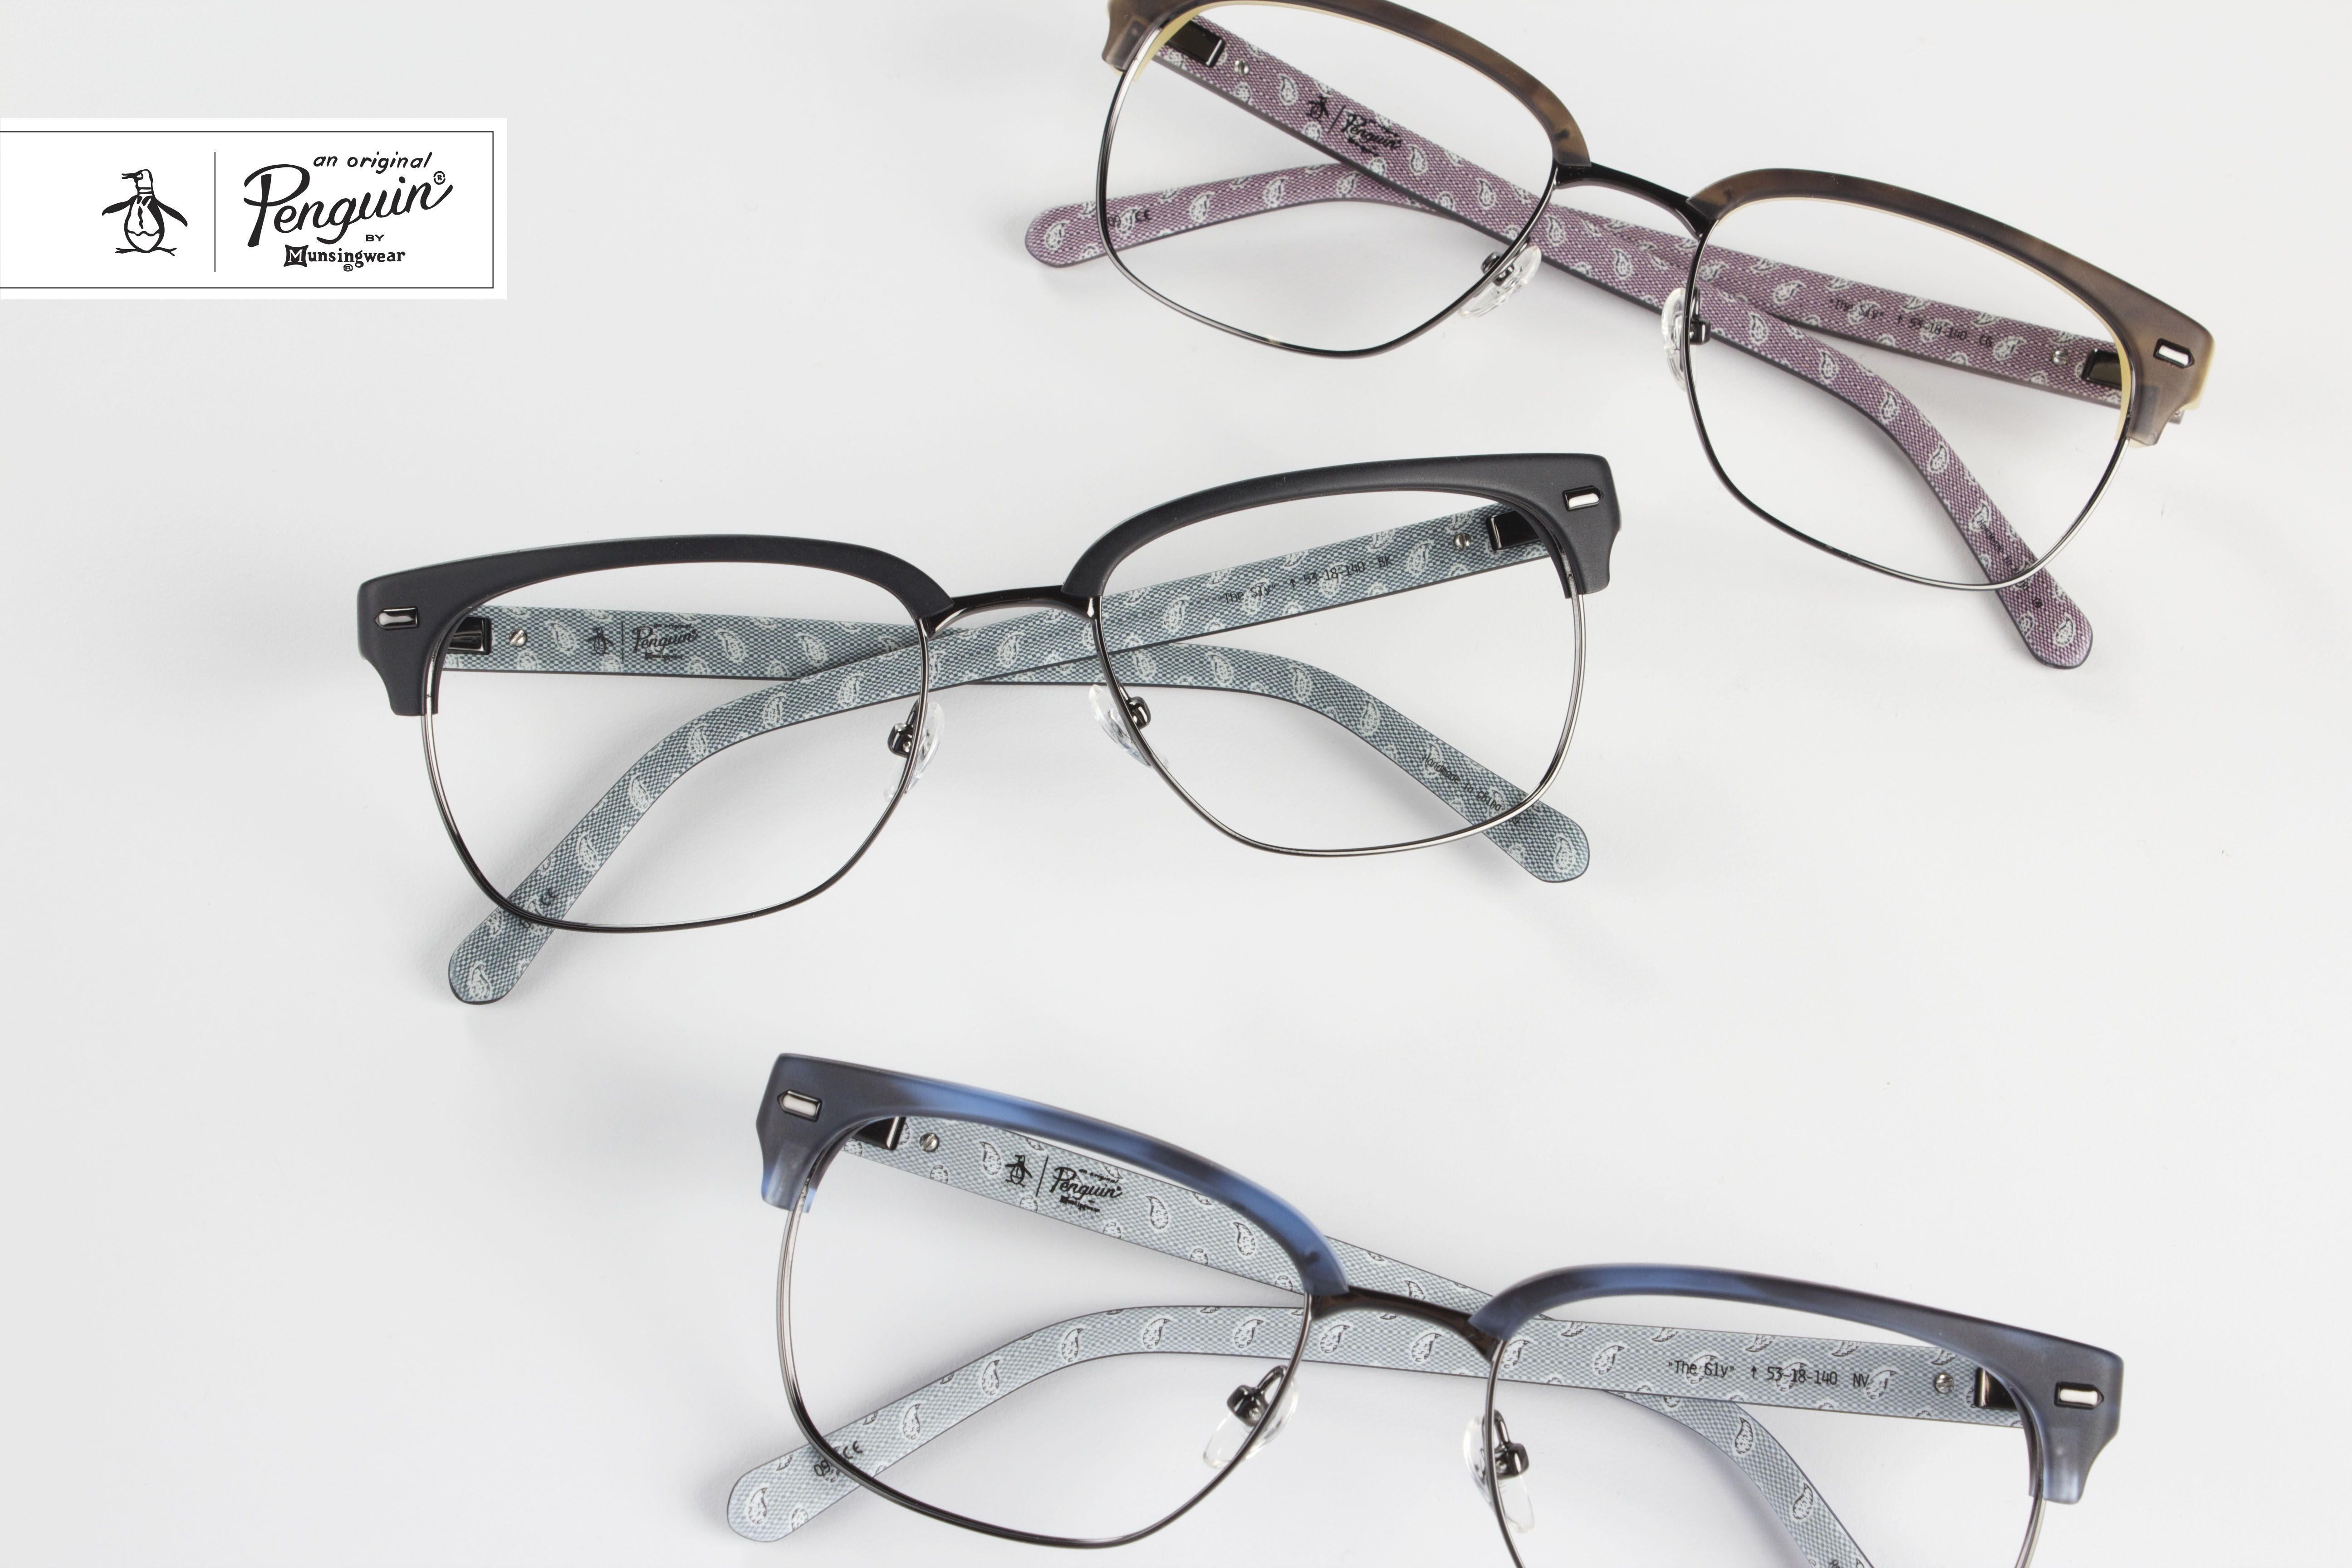 Penguin - The Sly . Visit eyeDOCS Preston to try them on! #Penguin ...